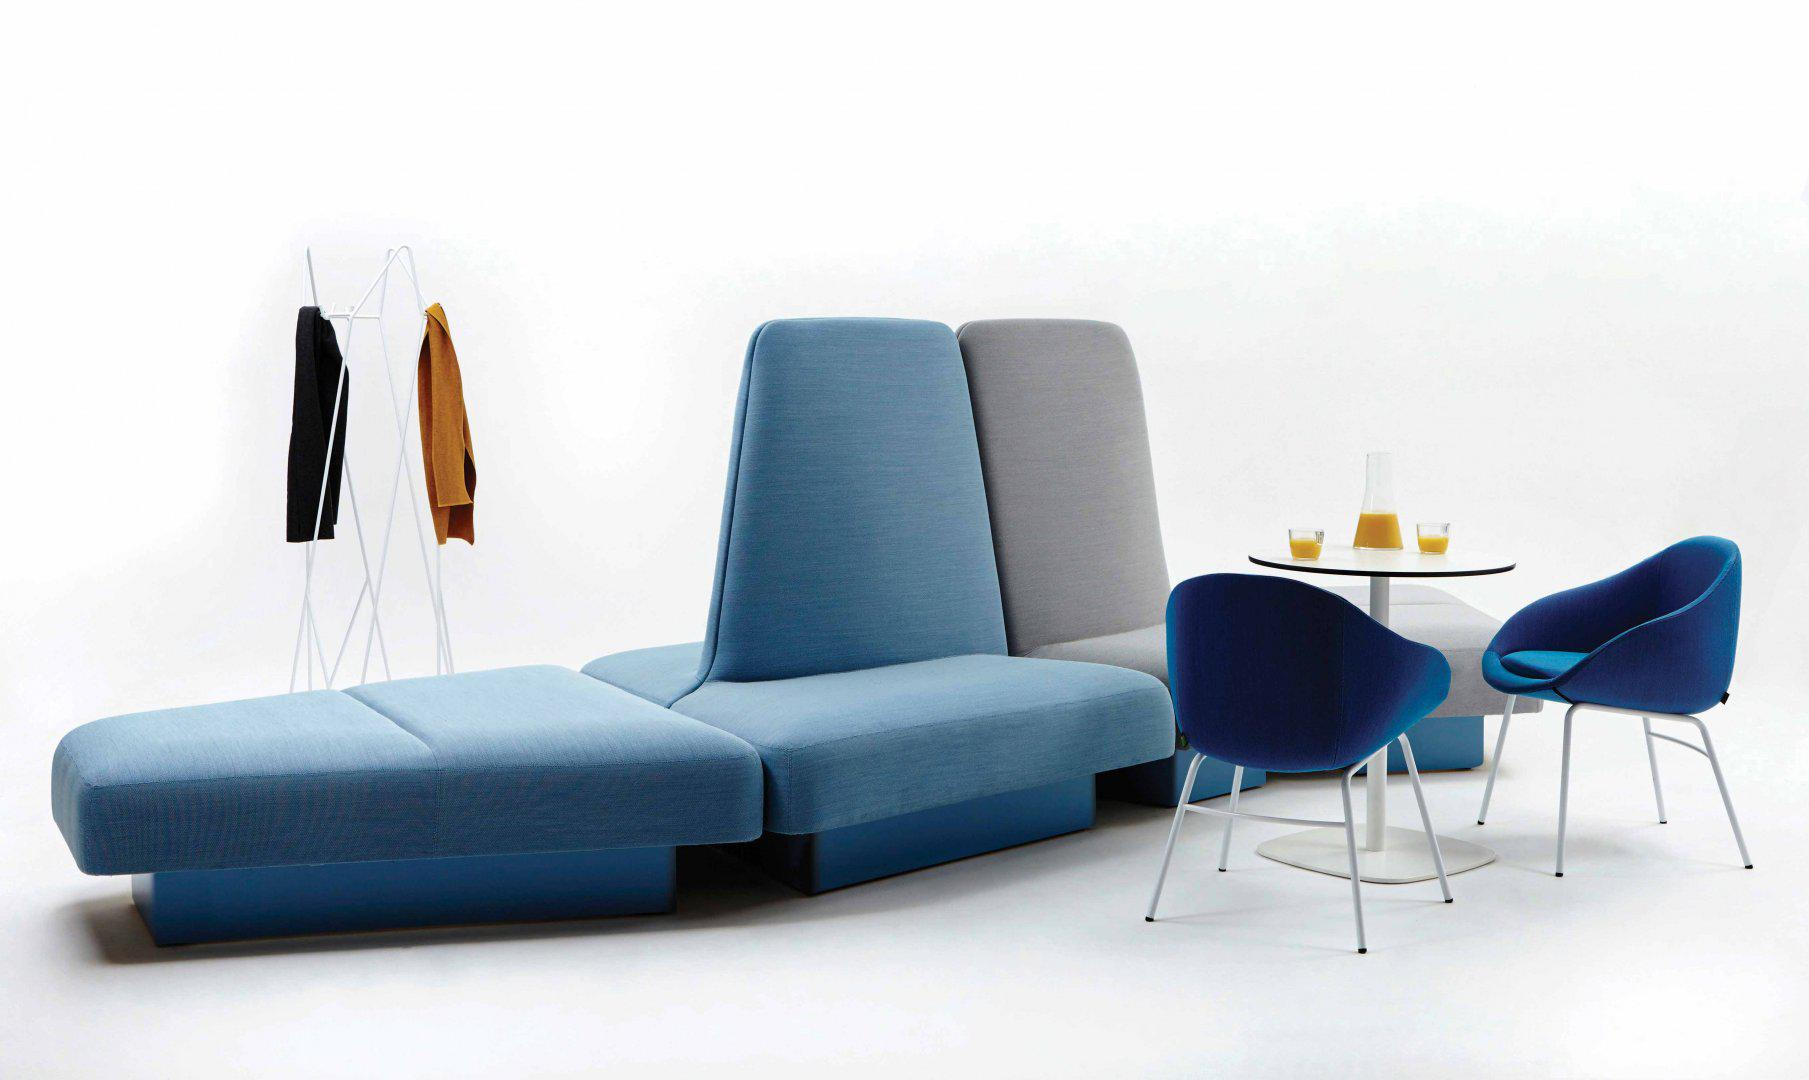 Rhyme Modular Seating Workspace Studio